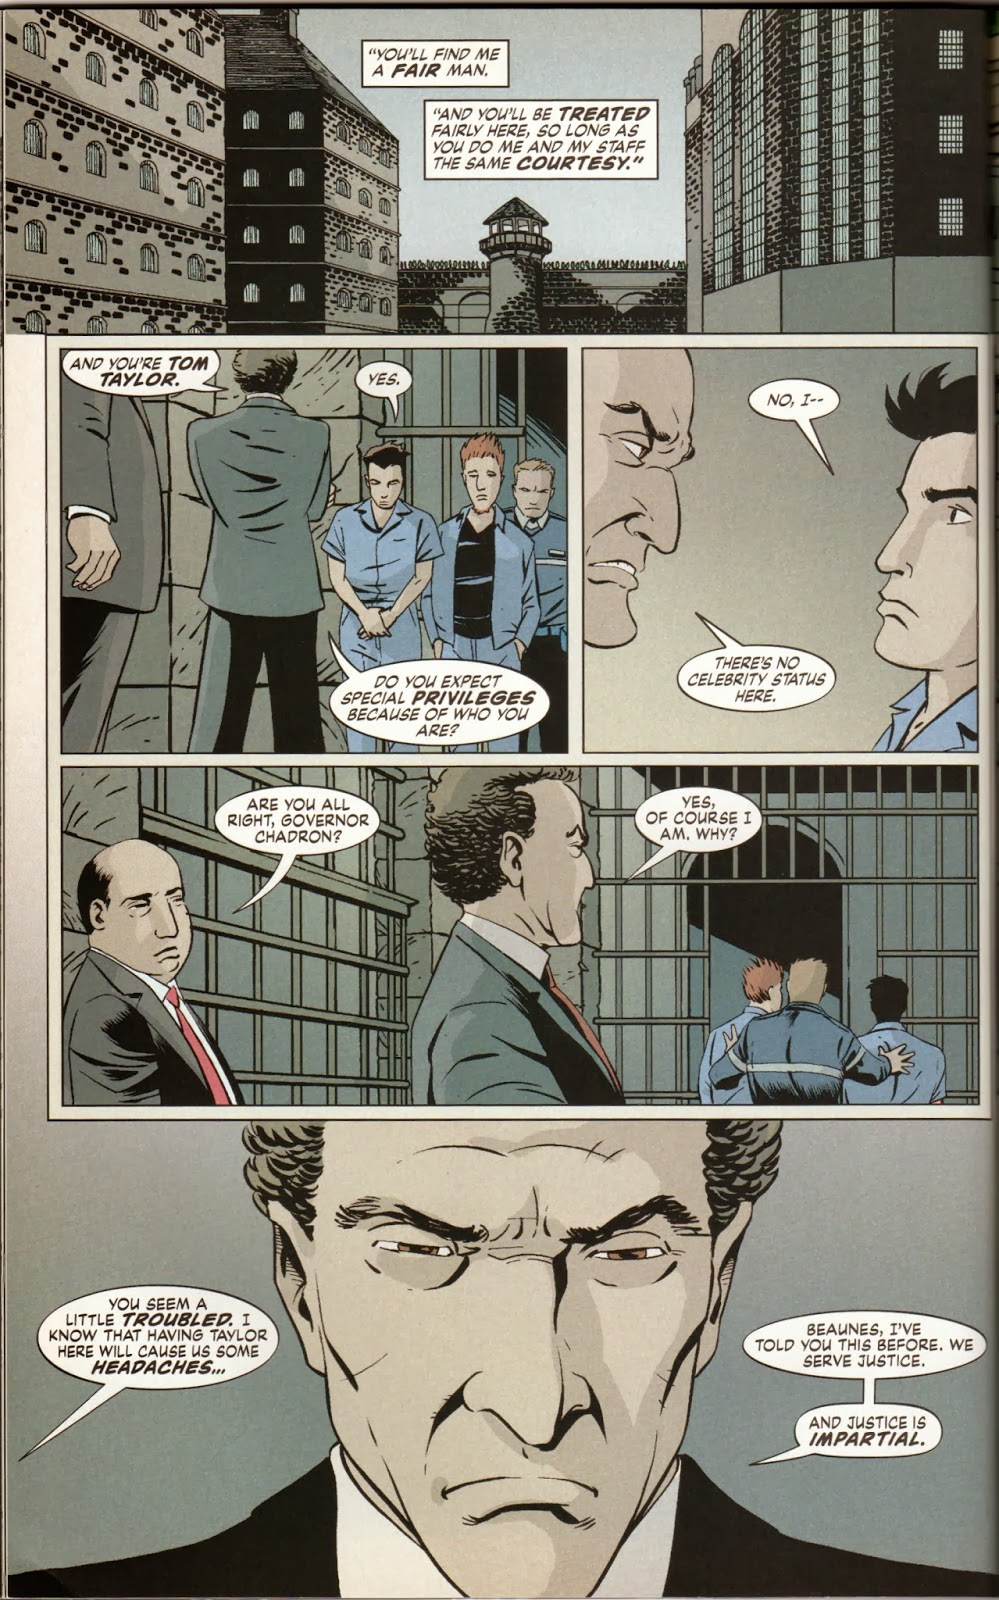 The Unwritten: Inside Man by Mike Carey and Peter Gross